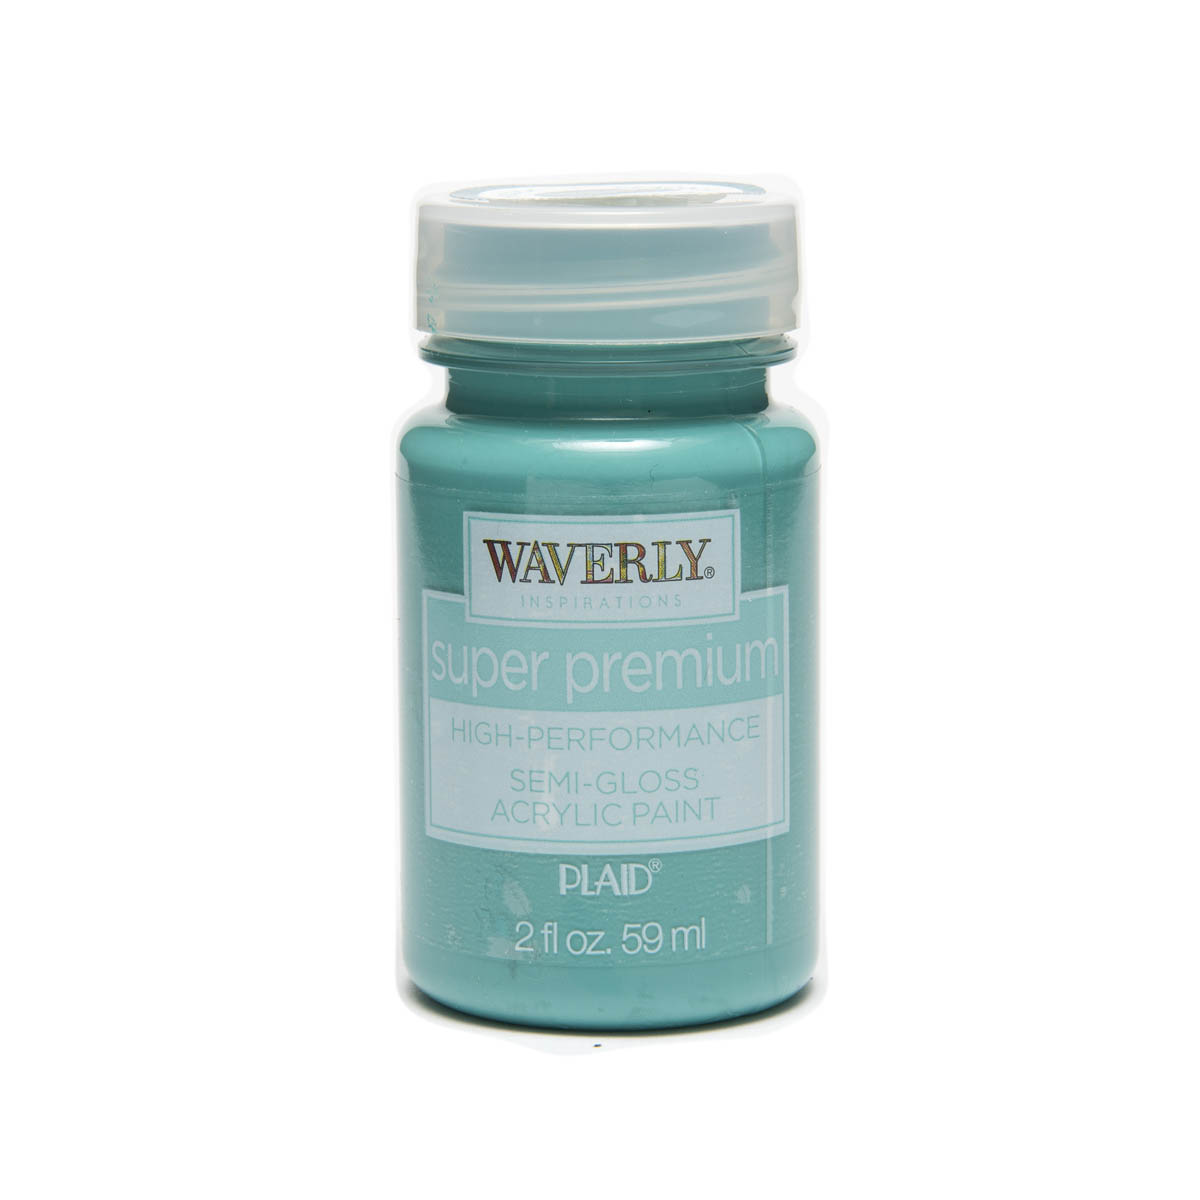 Waverly ® Inspirations Super Premium Semi-Gloss Acrylic Paint - Peacock, 2 oz.